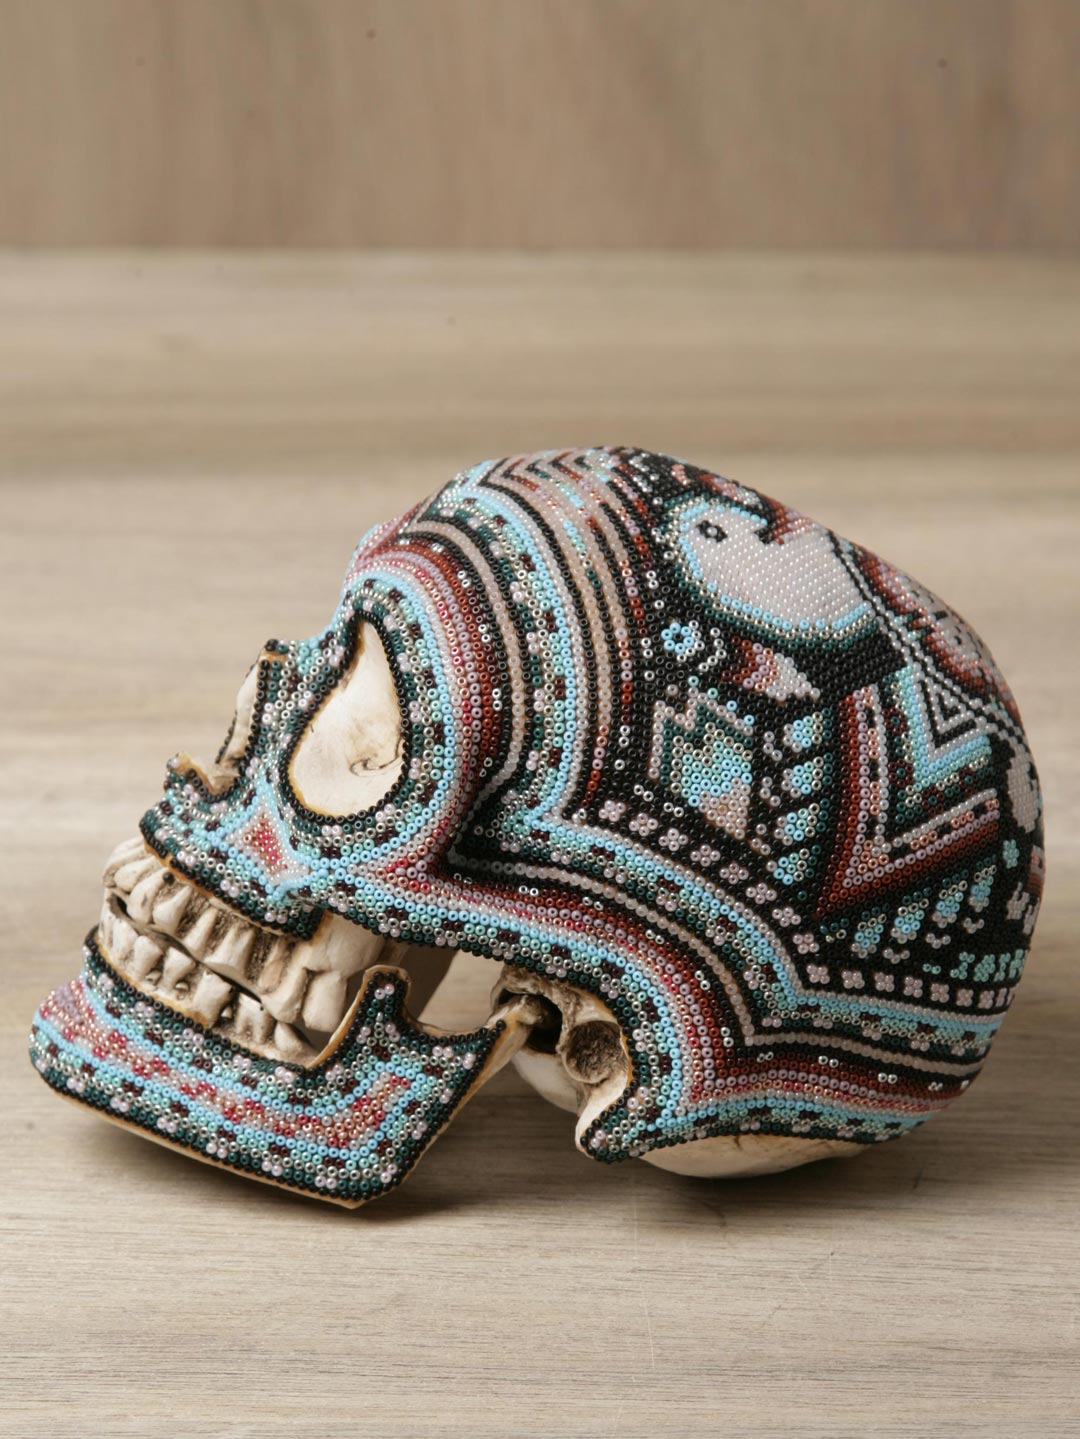 Beaded Skulls by Our Exquisite Corpse: our_exquisite_corpse_skulls_9_20111017_1405329065.jpg